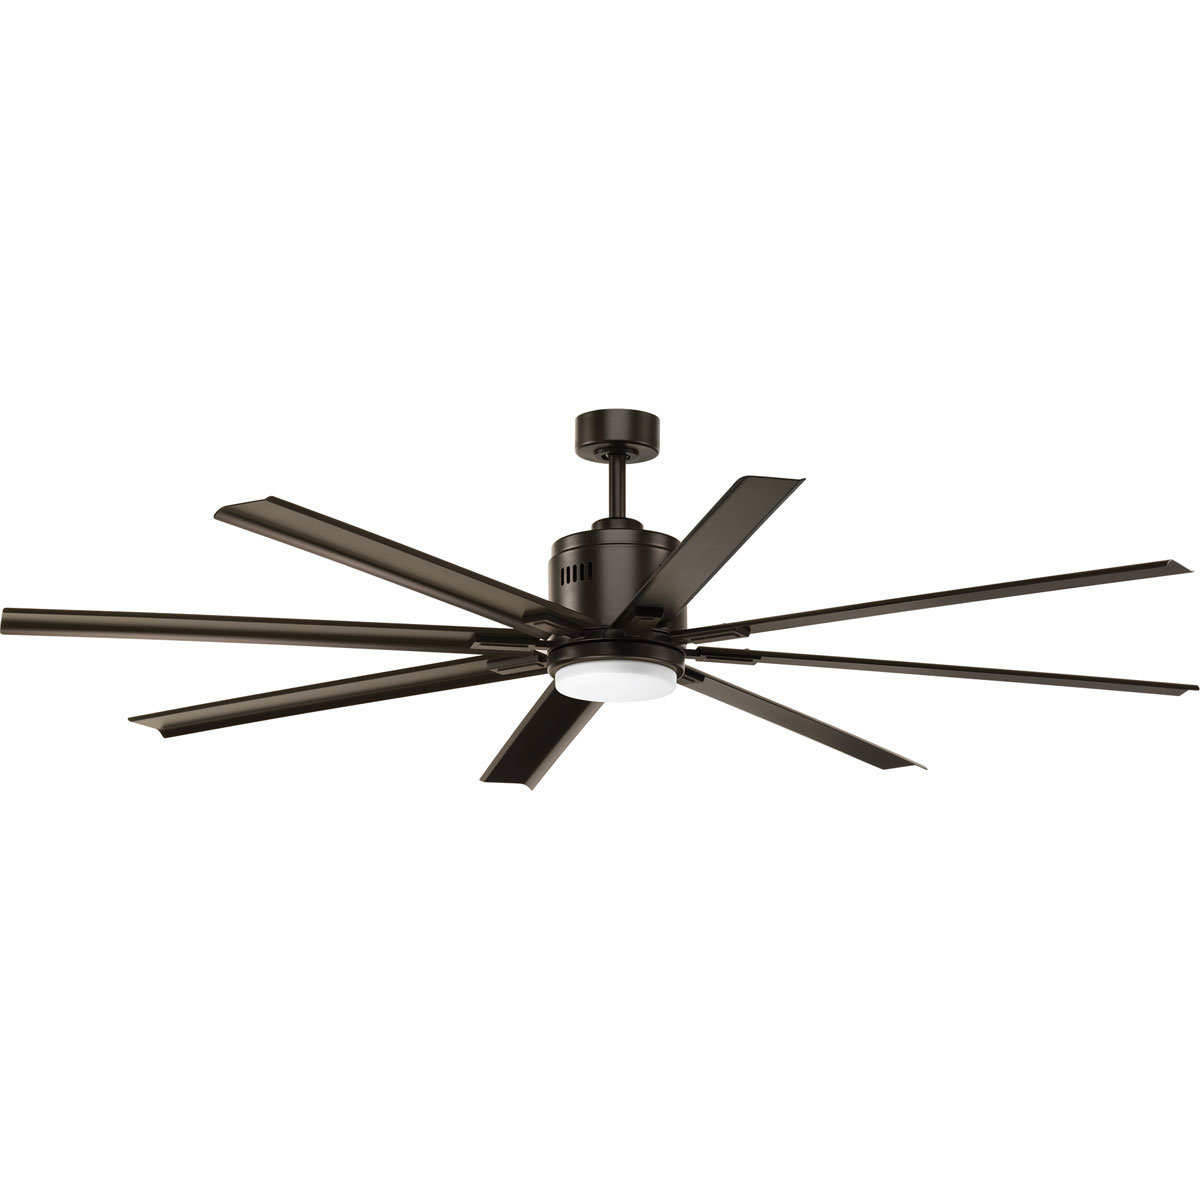 """Fashionable Bankston 8 Blade Led Ceiling Fans With Regard To 72"""" Bankston 8 Blade Led Ceiling Fan With Remote, Light Kit Included (View 9 of 20)"""